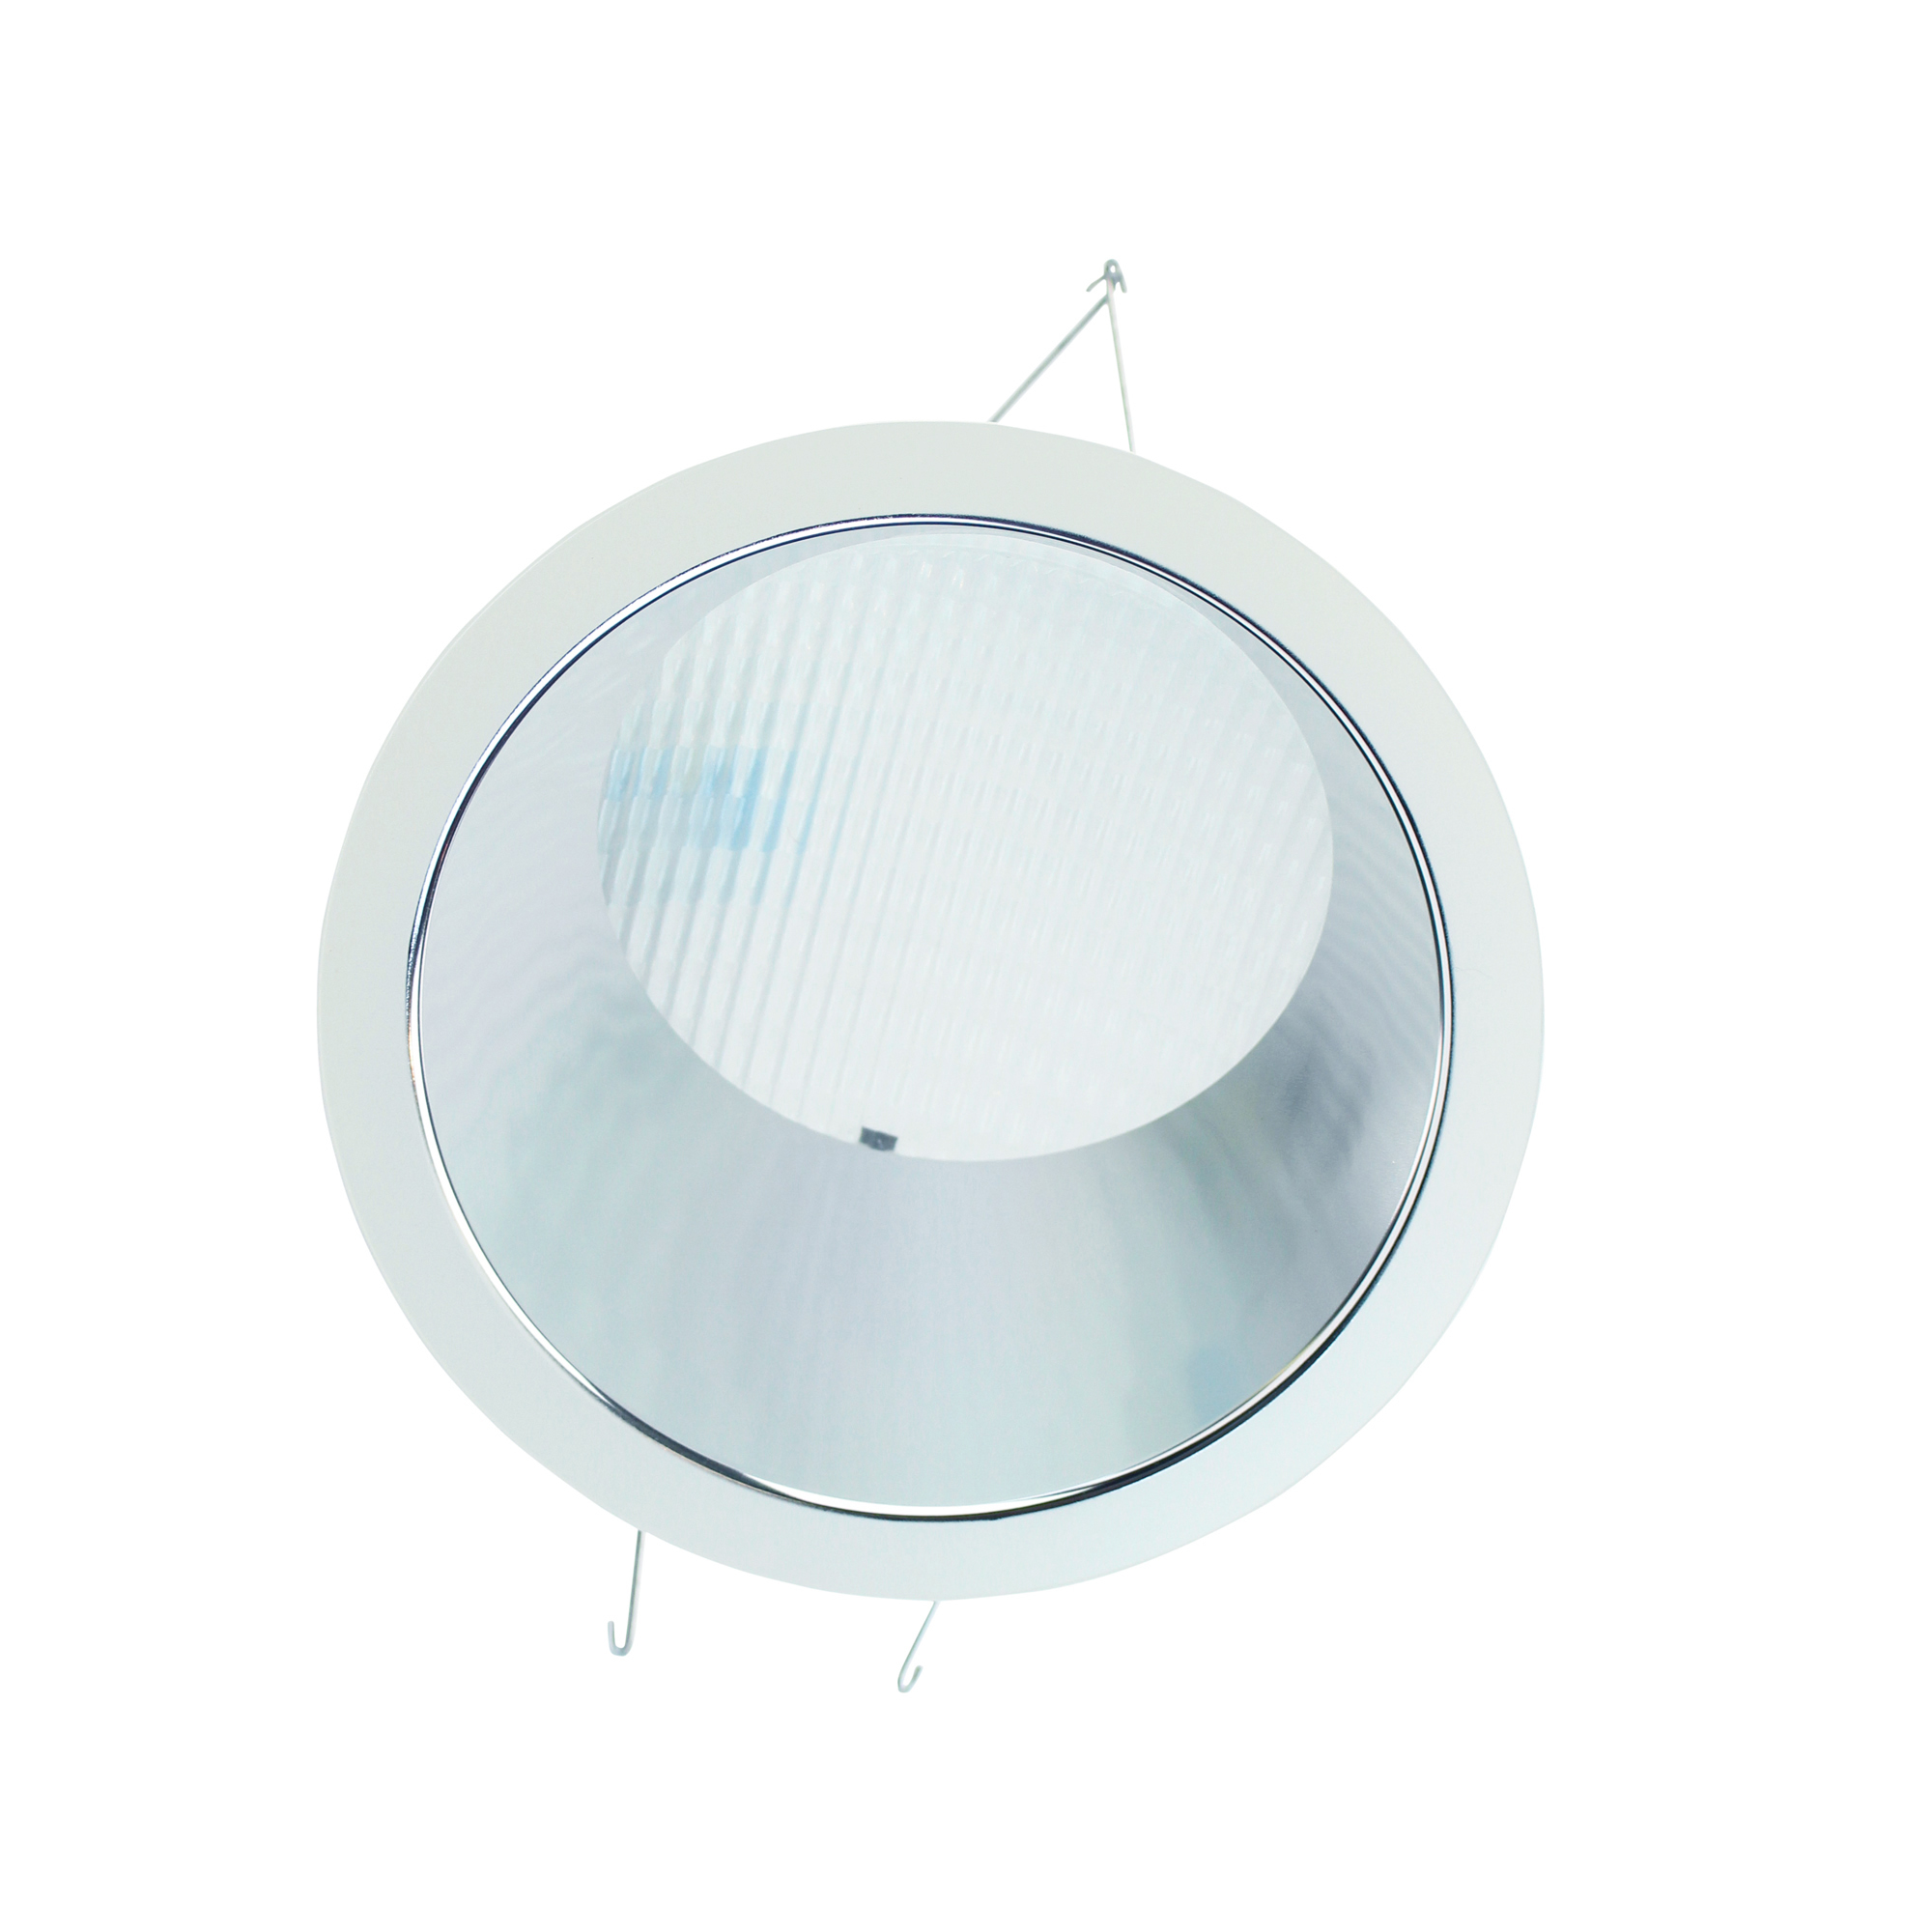 Recessed Lights Wall Washer : LIGHTOLIER LW7CLW 7-1/2